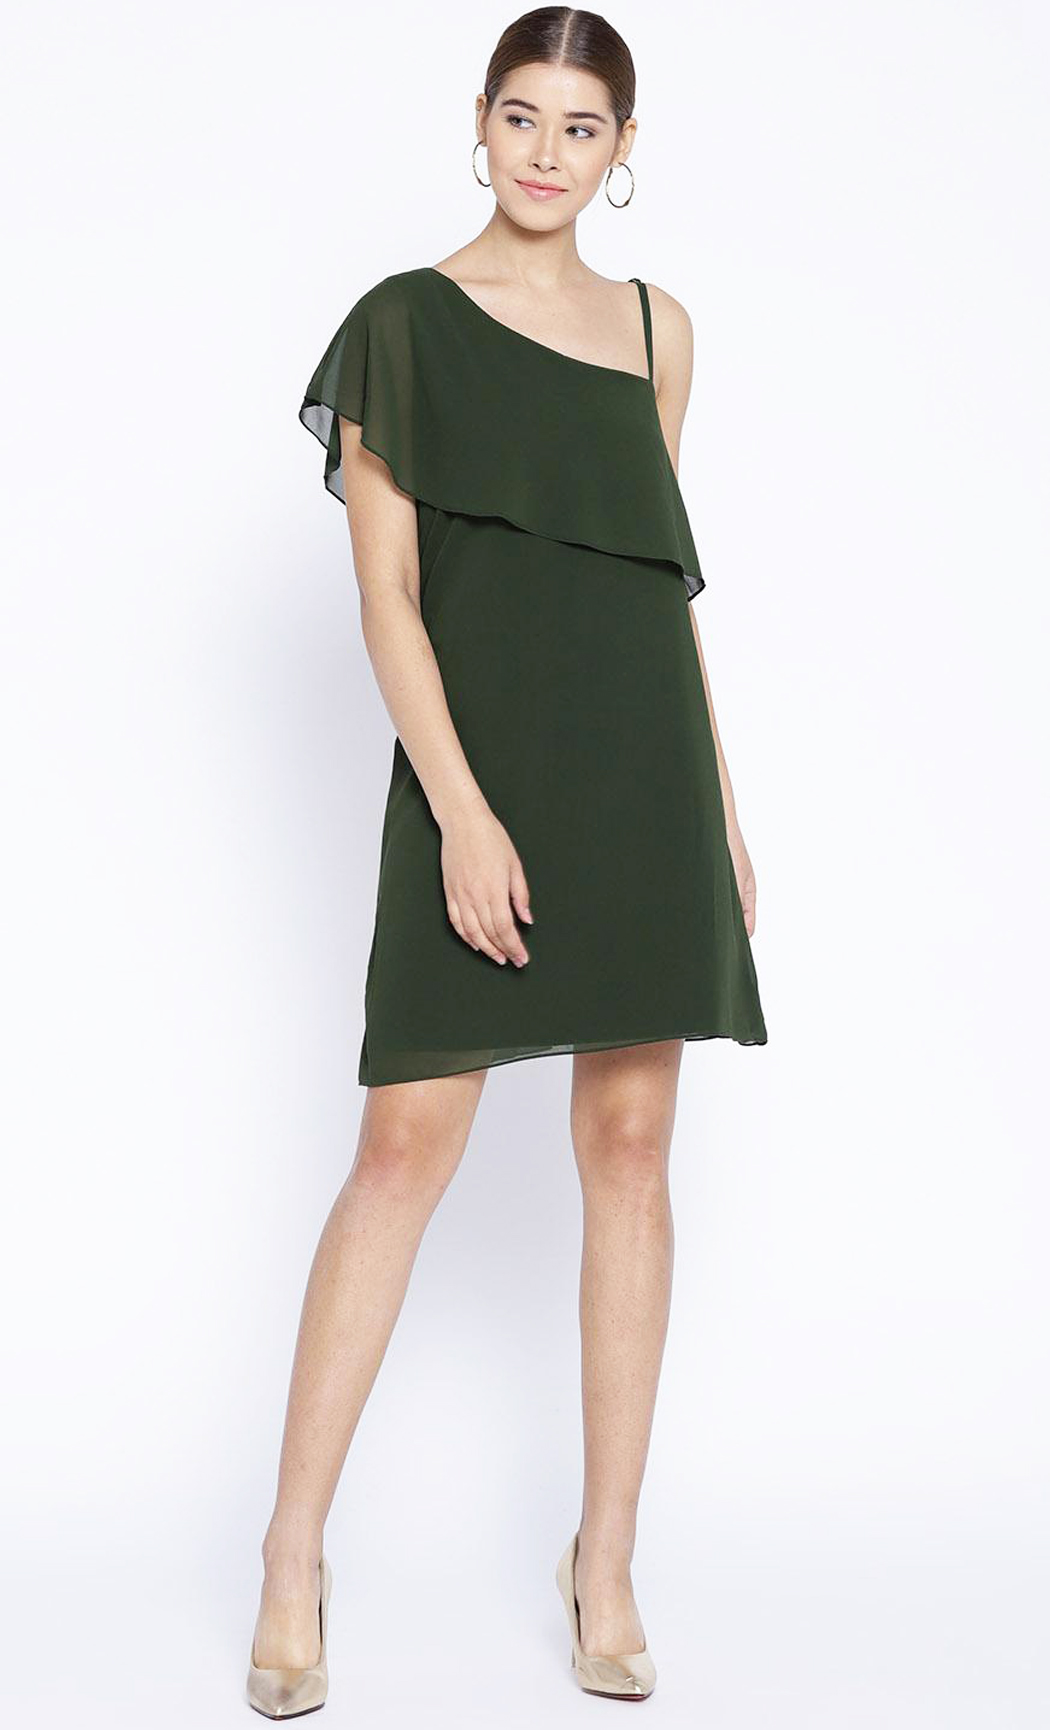 Green Madame Prissy One Shoulder Dress. Buy Online